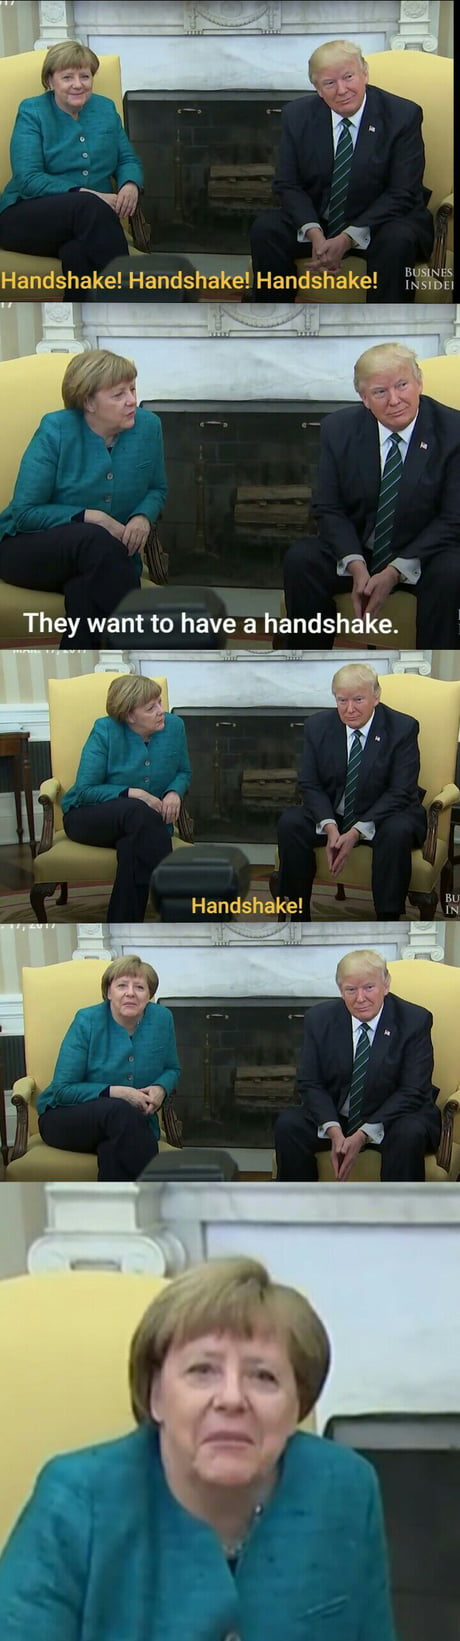 When you met your favorite politician but he don't want to handshake :(